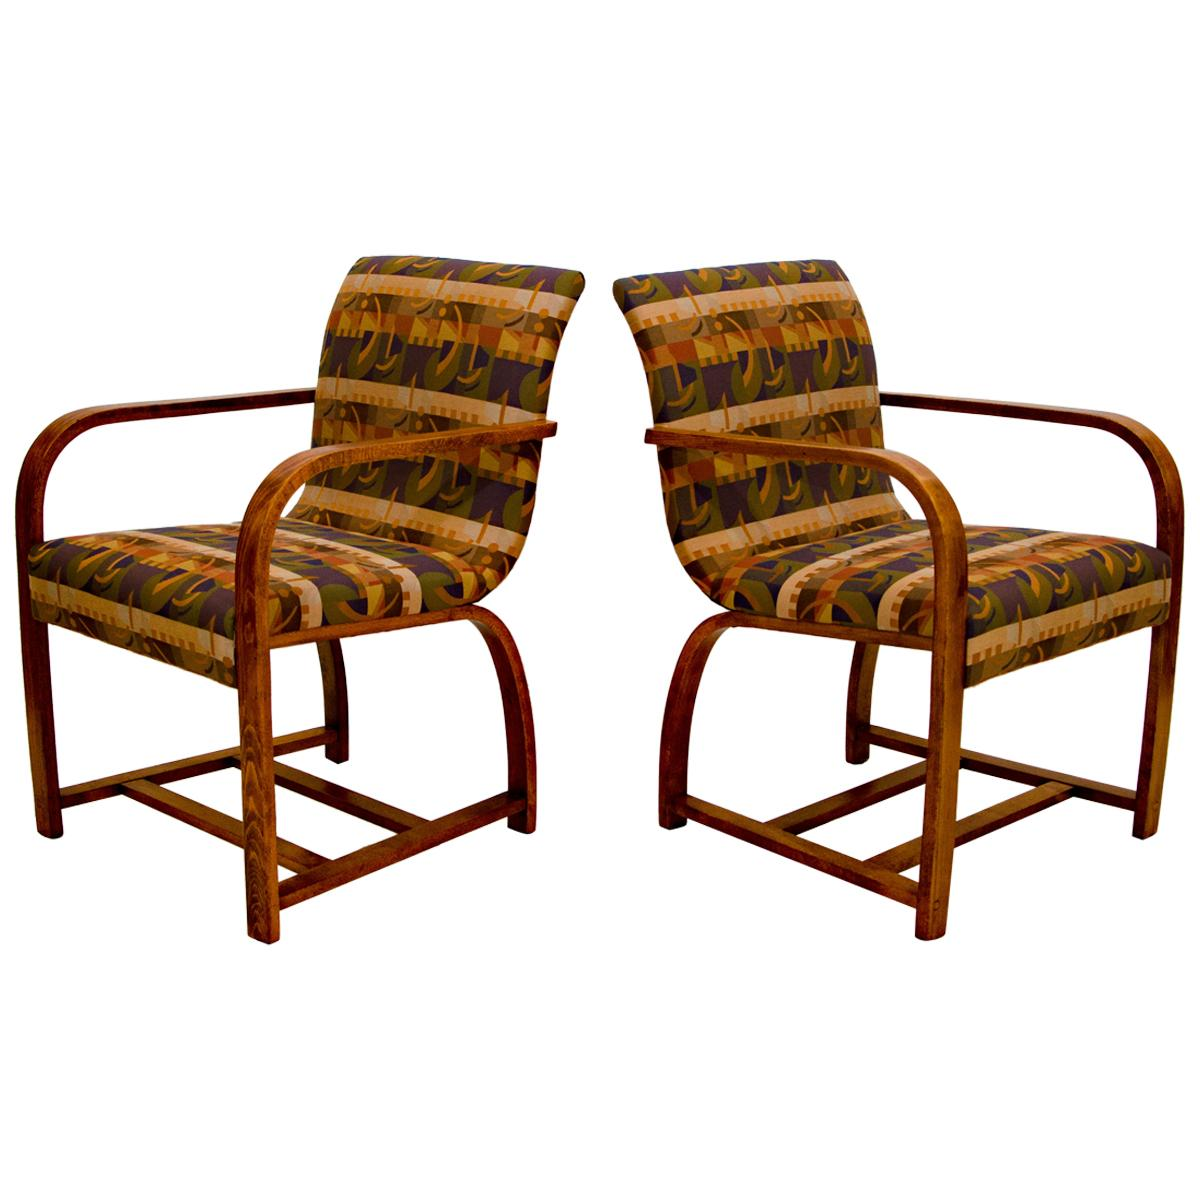 Pair of Art Deco Armchairs, Gilbert Rohde for Heywood Wakefield